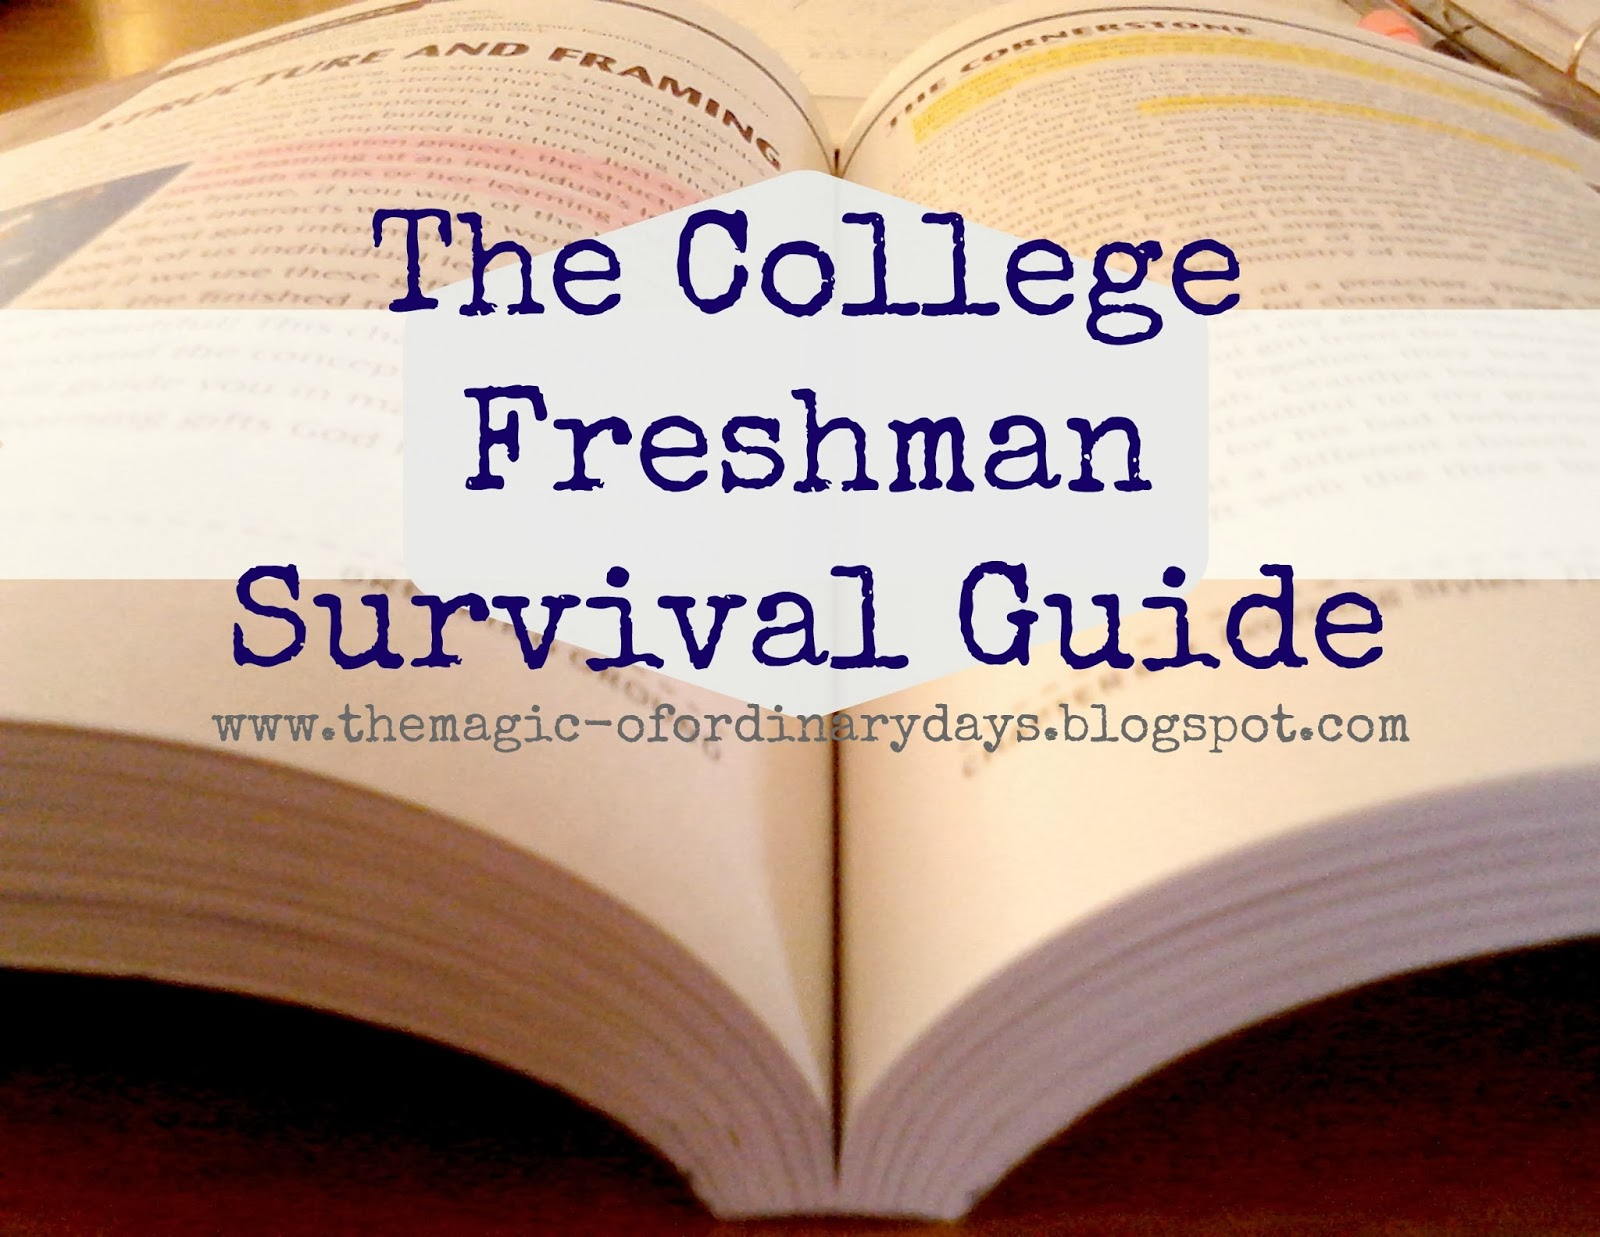 the magic of ordinary days the college freshman survival guide the college freshman survival guide congratulations you ve made it to the first week of college d